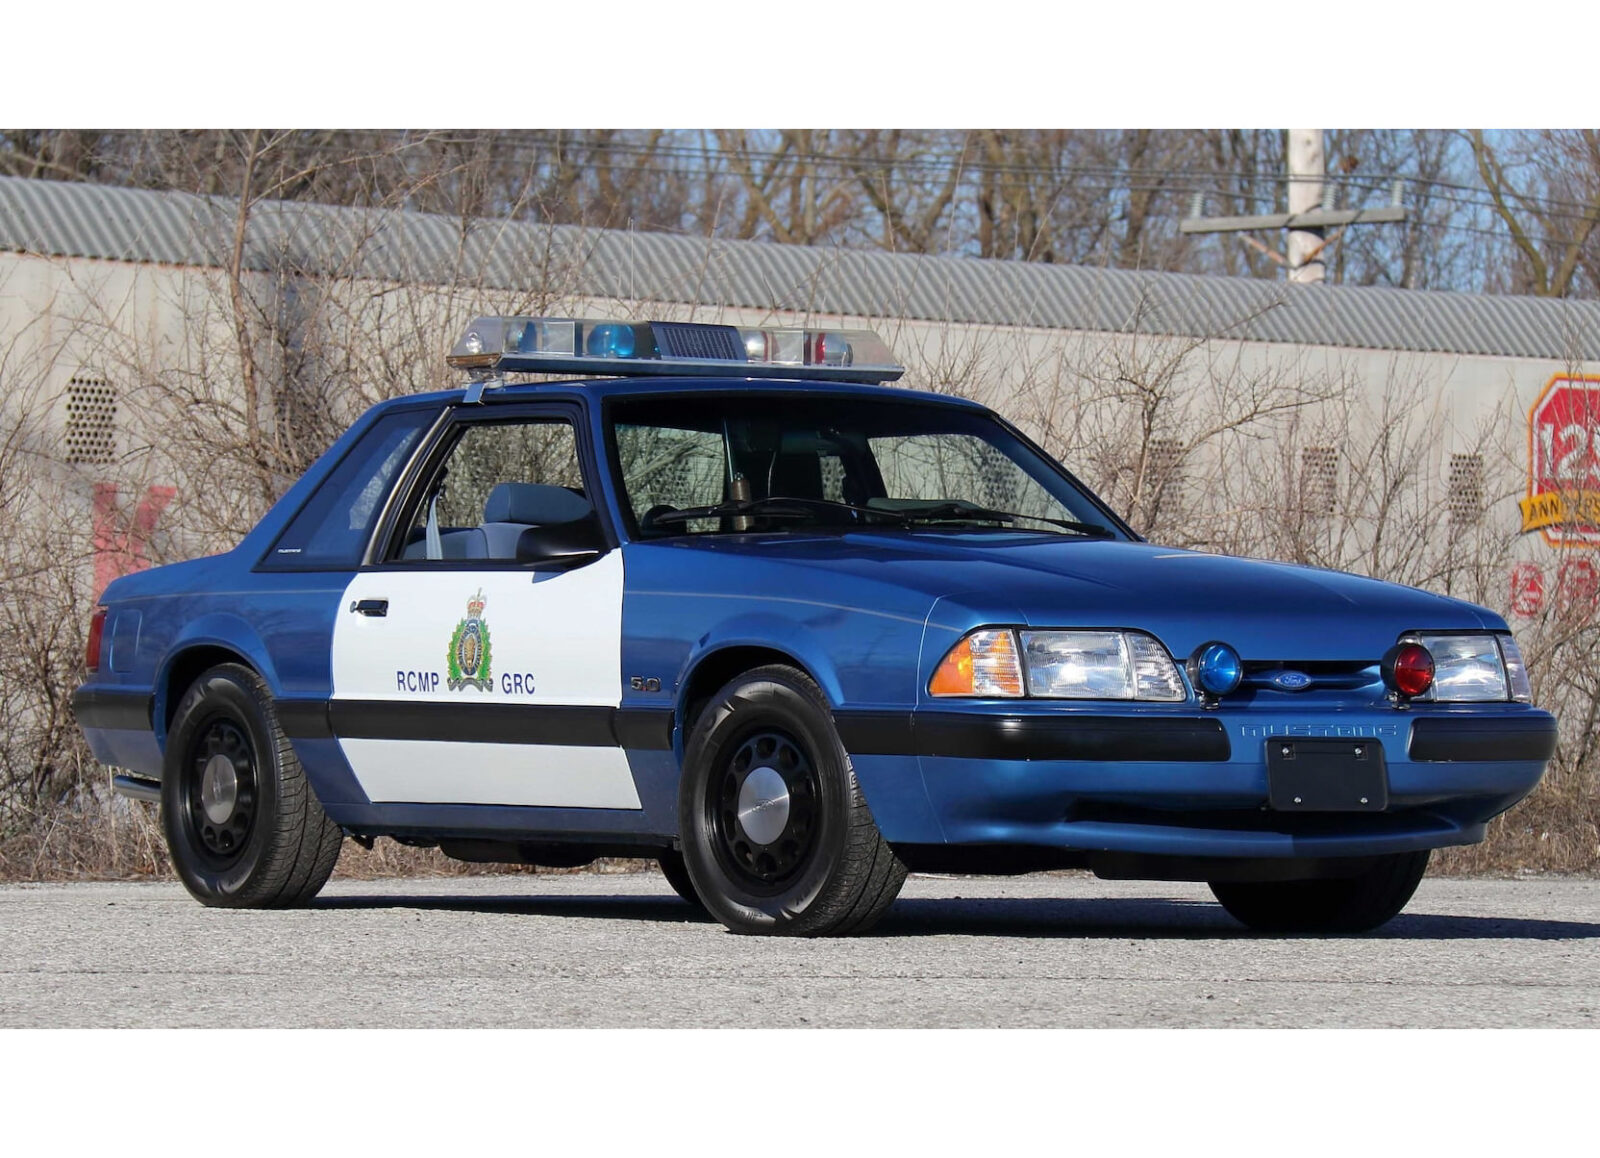 An Original Royal Canadian Mounted Police Ford Mustang Ssp